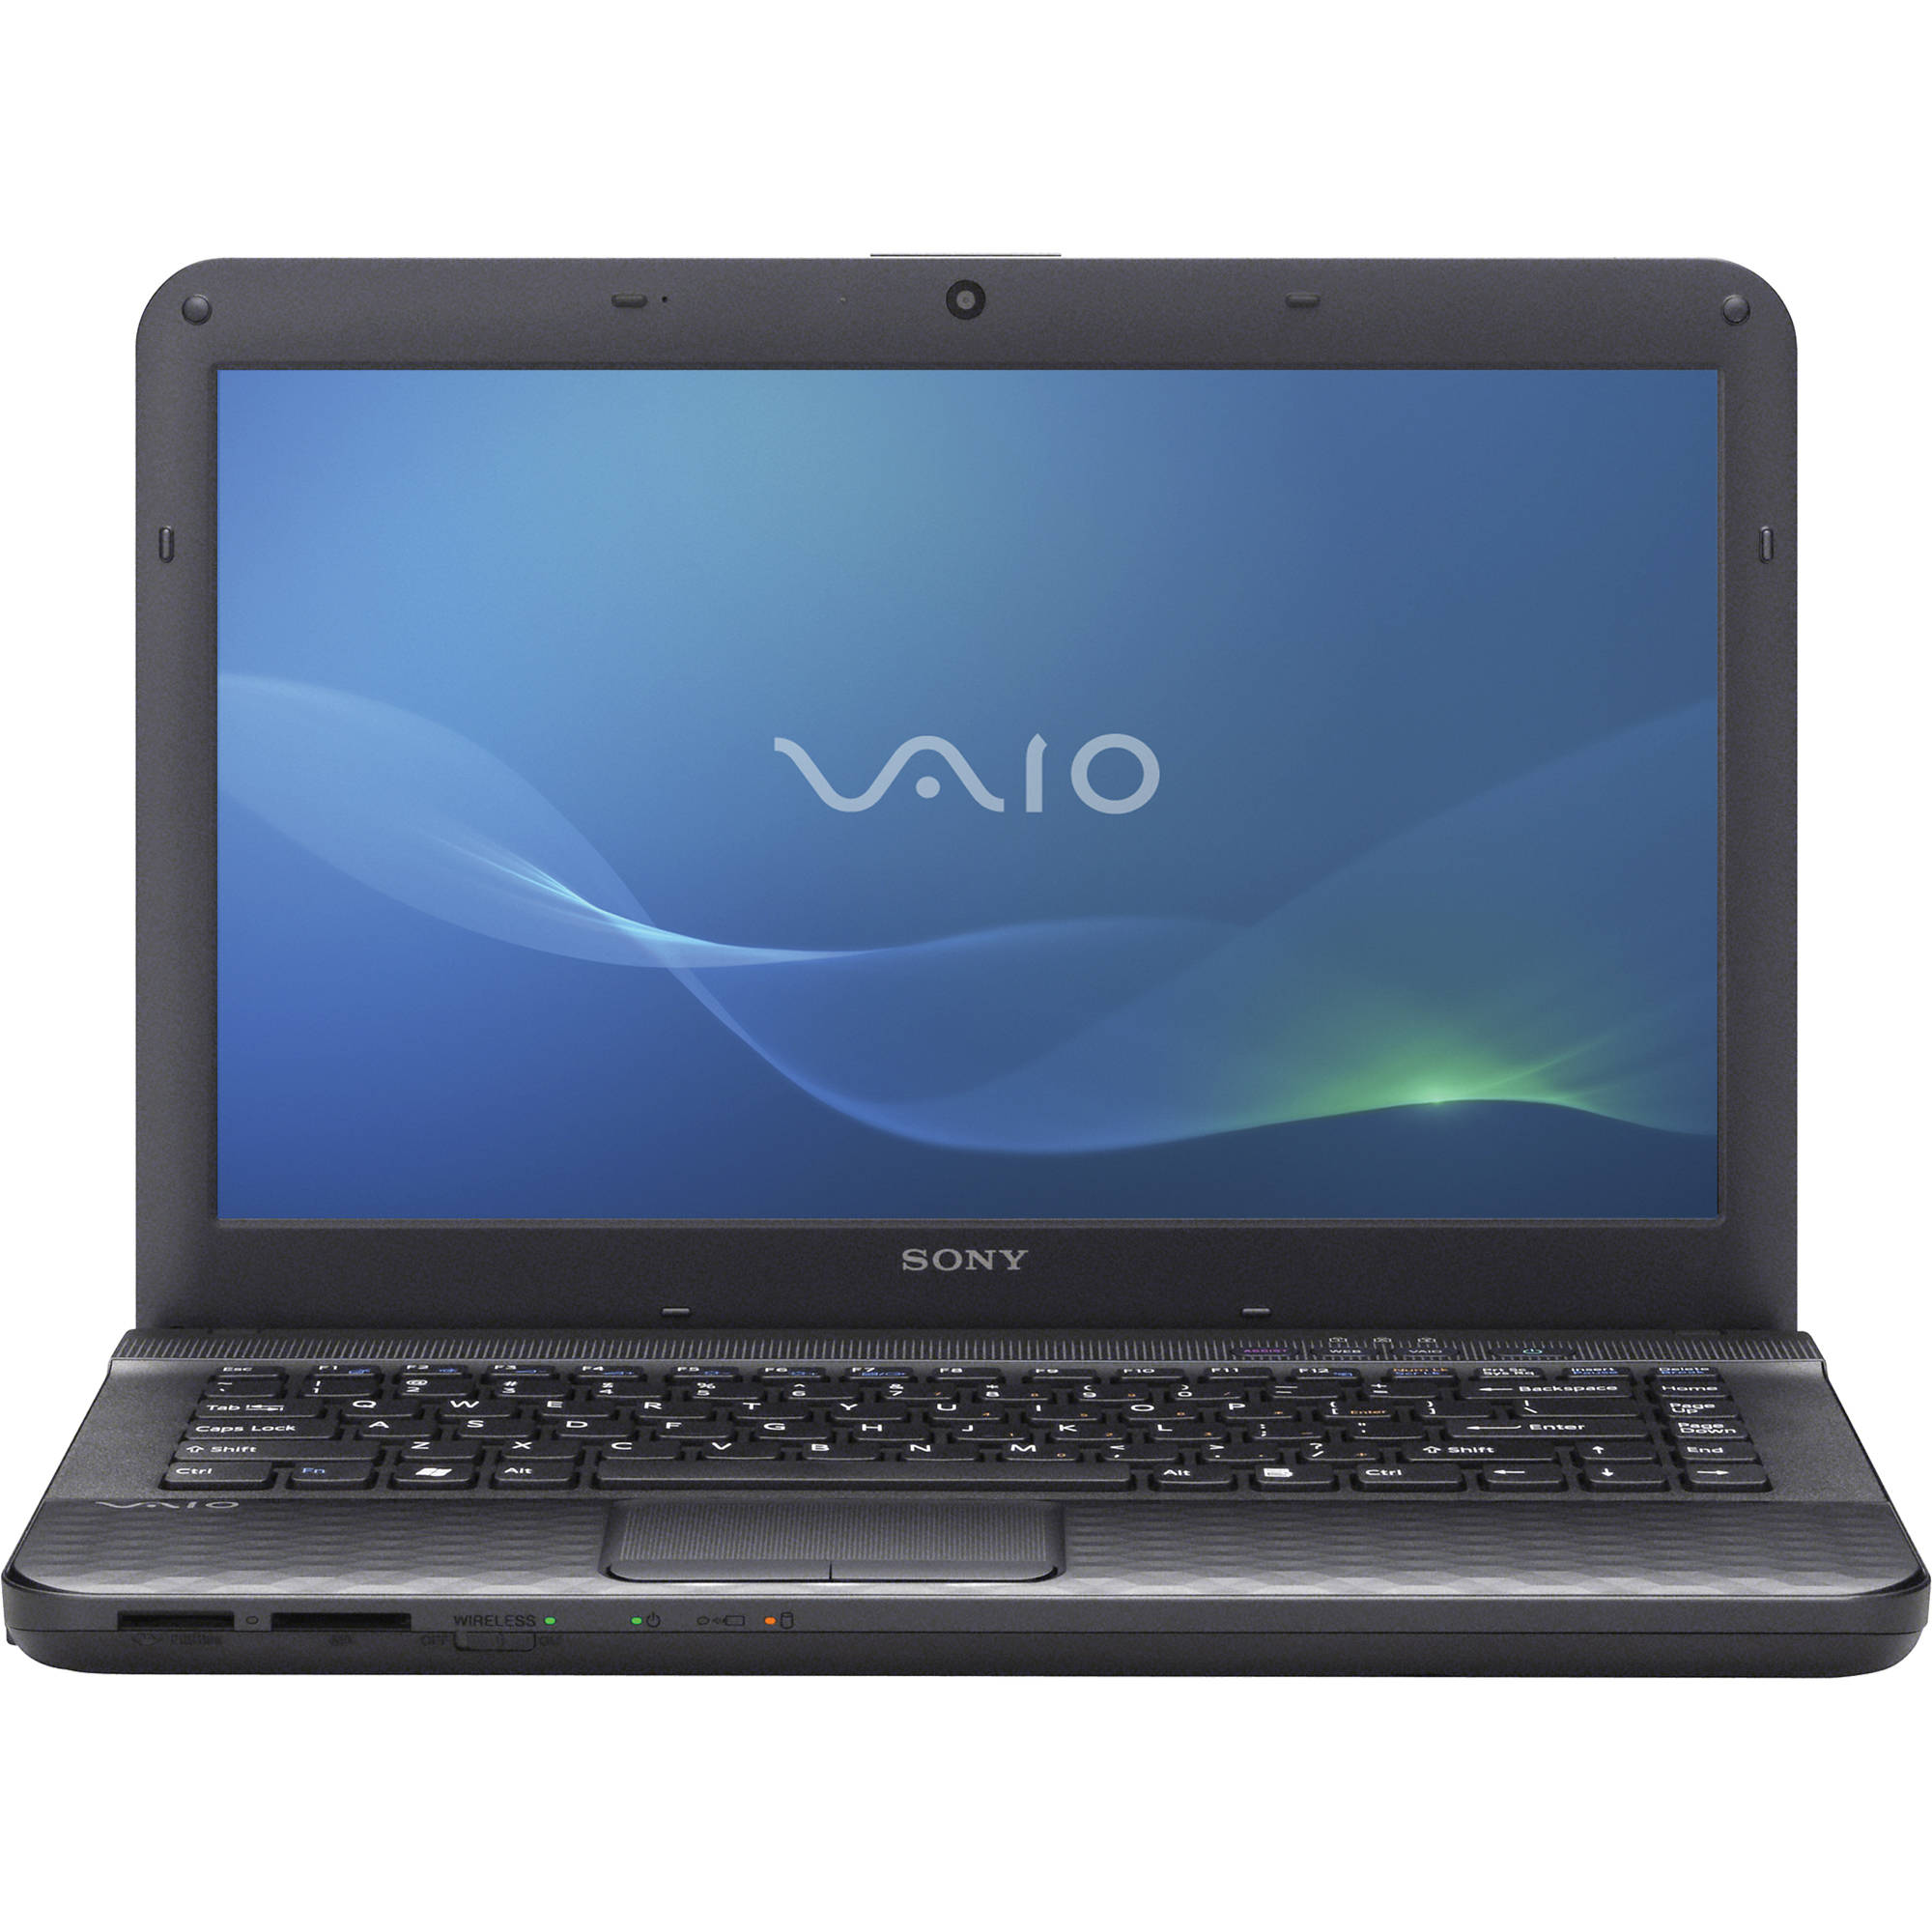 Sony Vaio VPCEG15FX Intel Wireless Display Driver Download